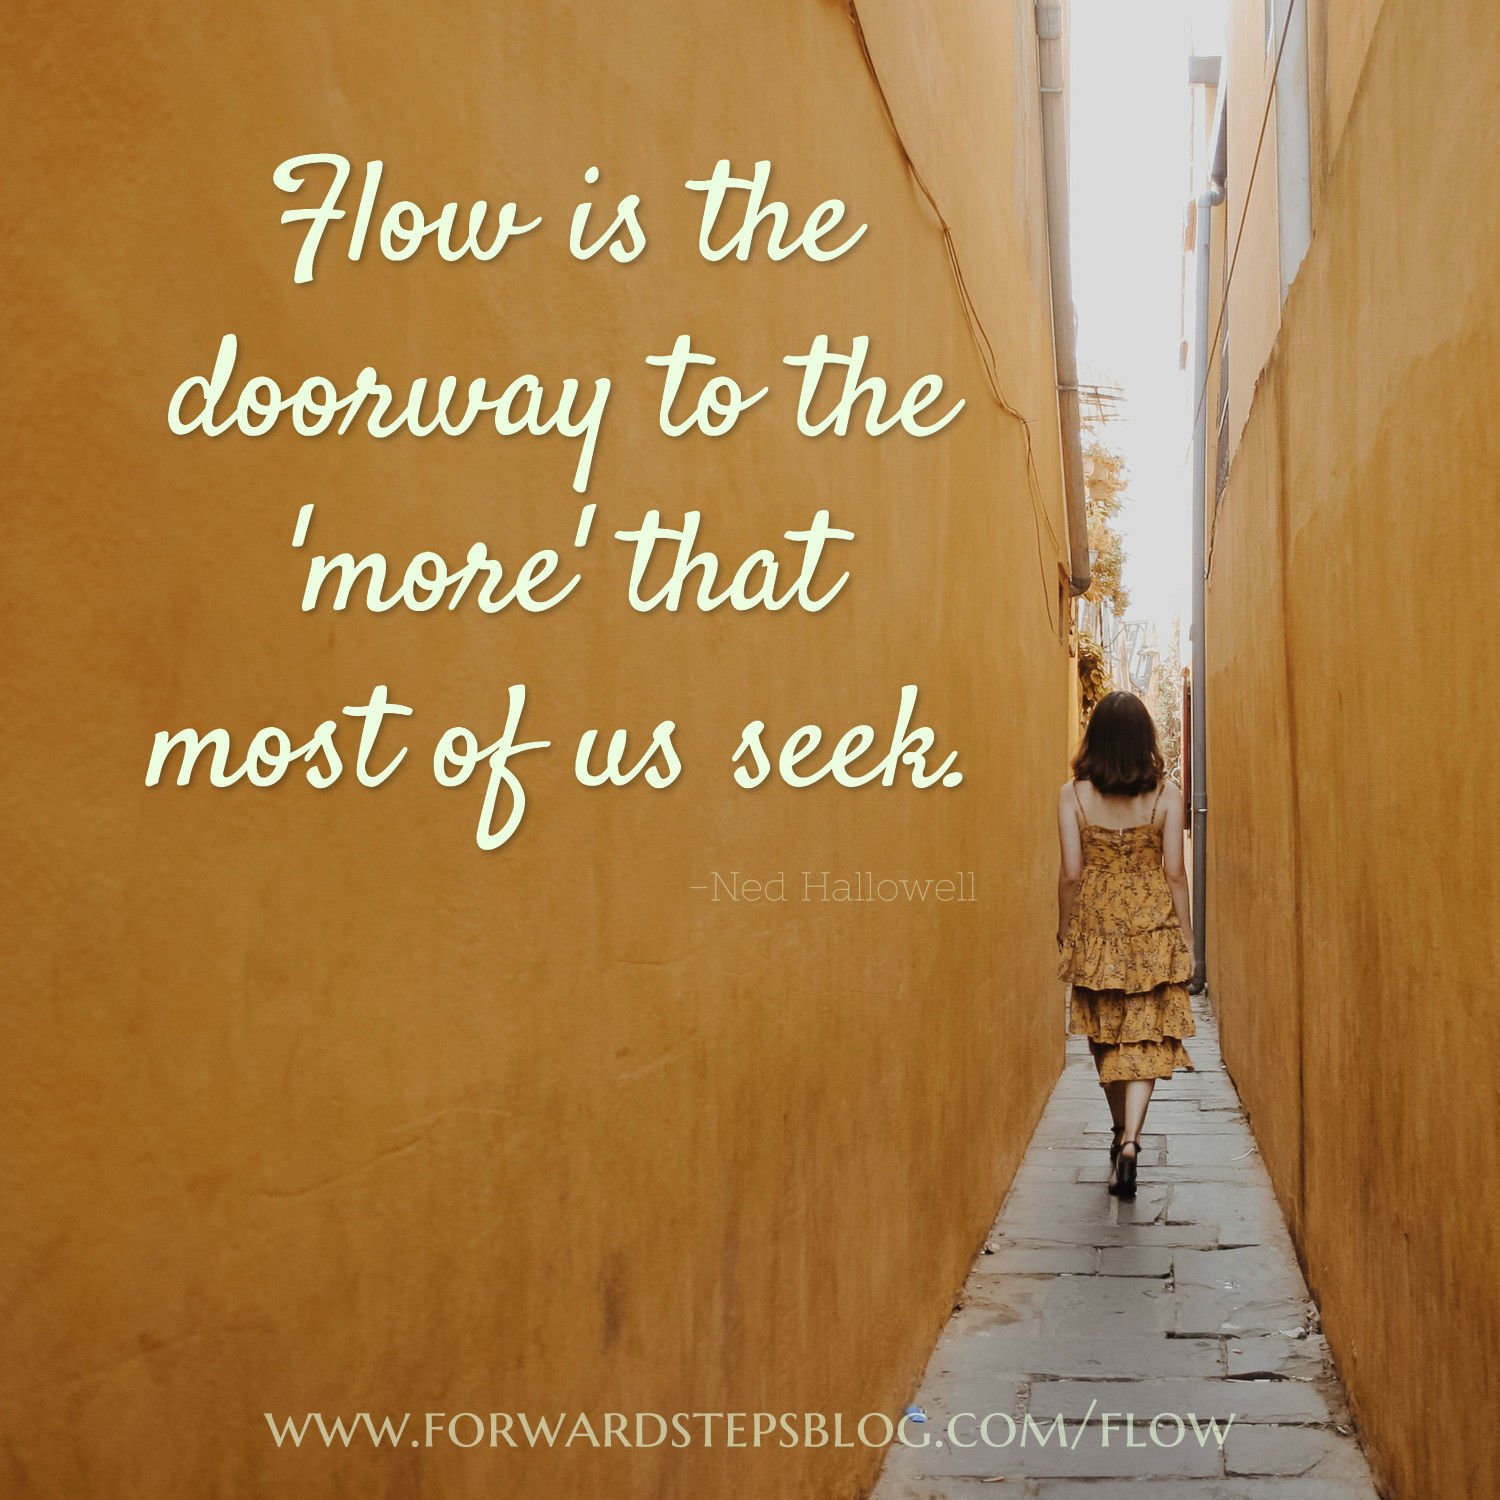 Flow is the doorway - Forward Steps image_14